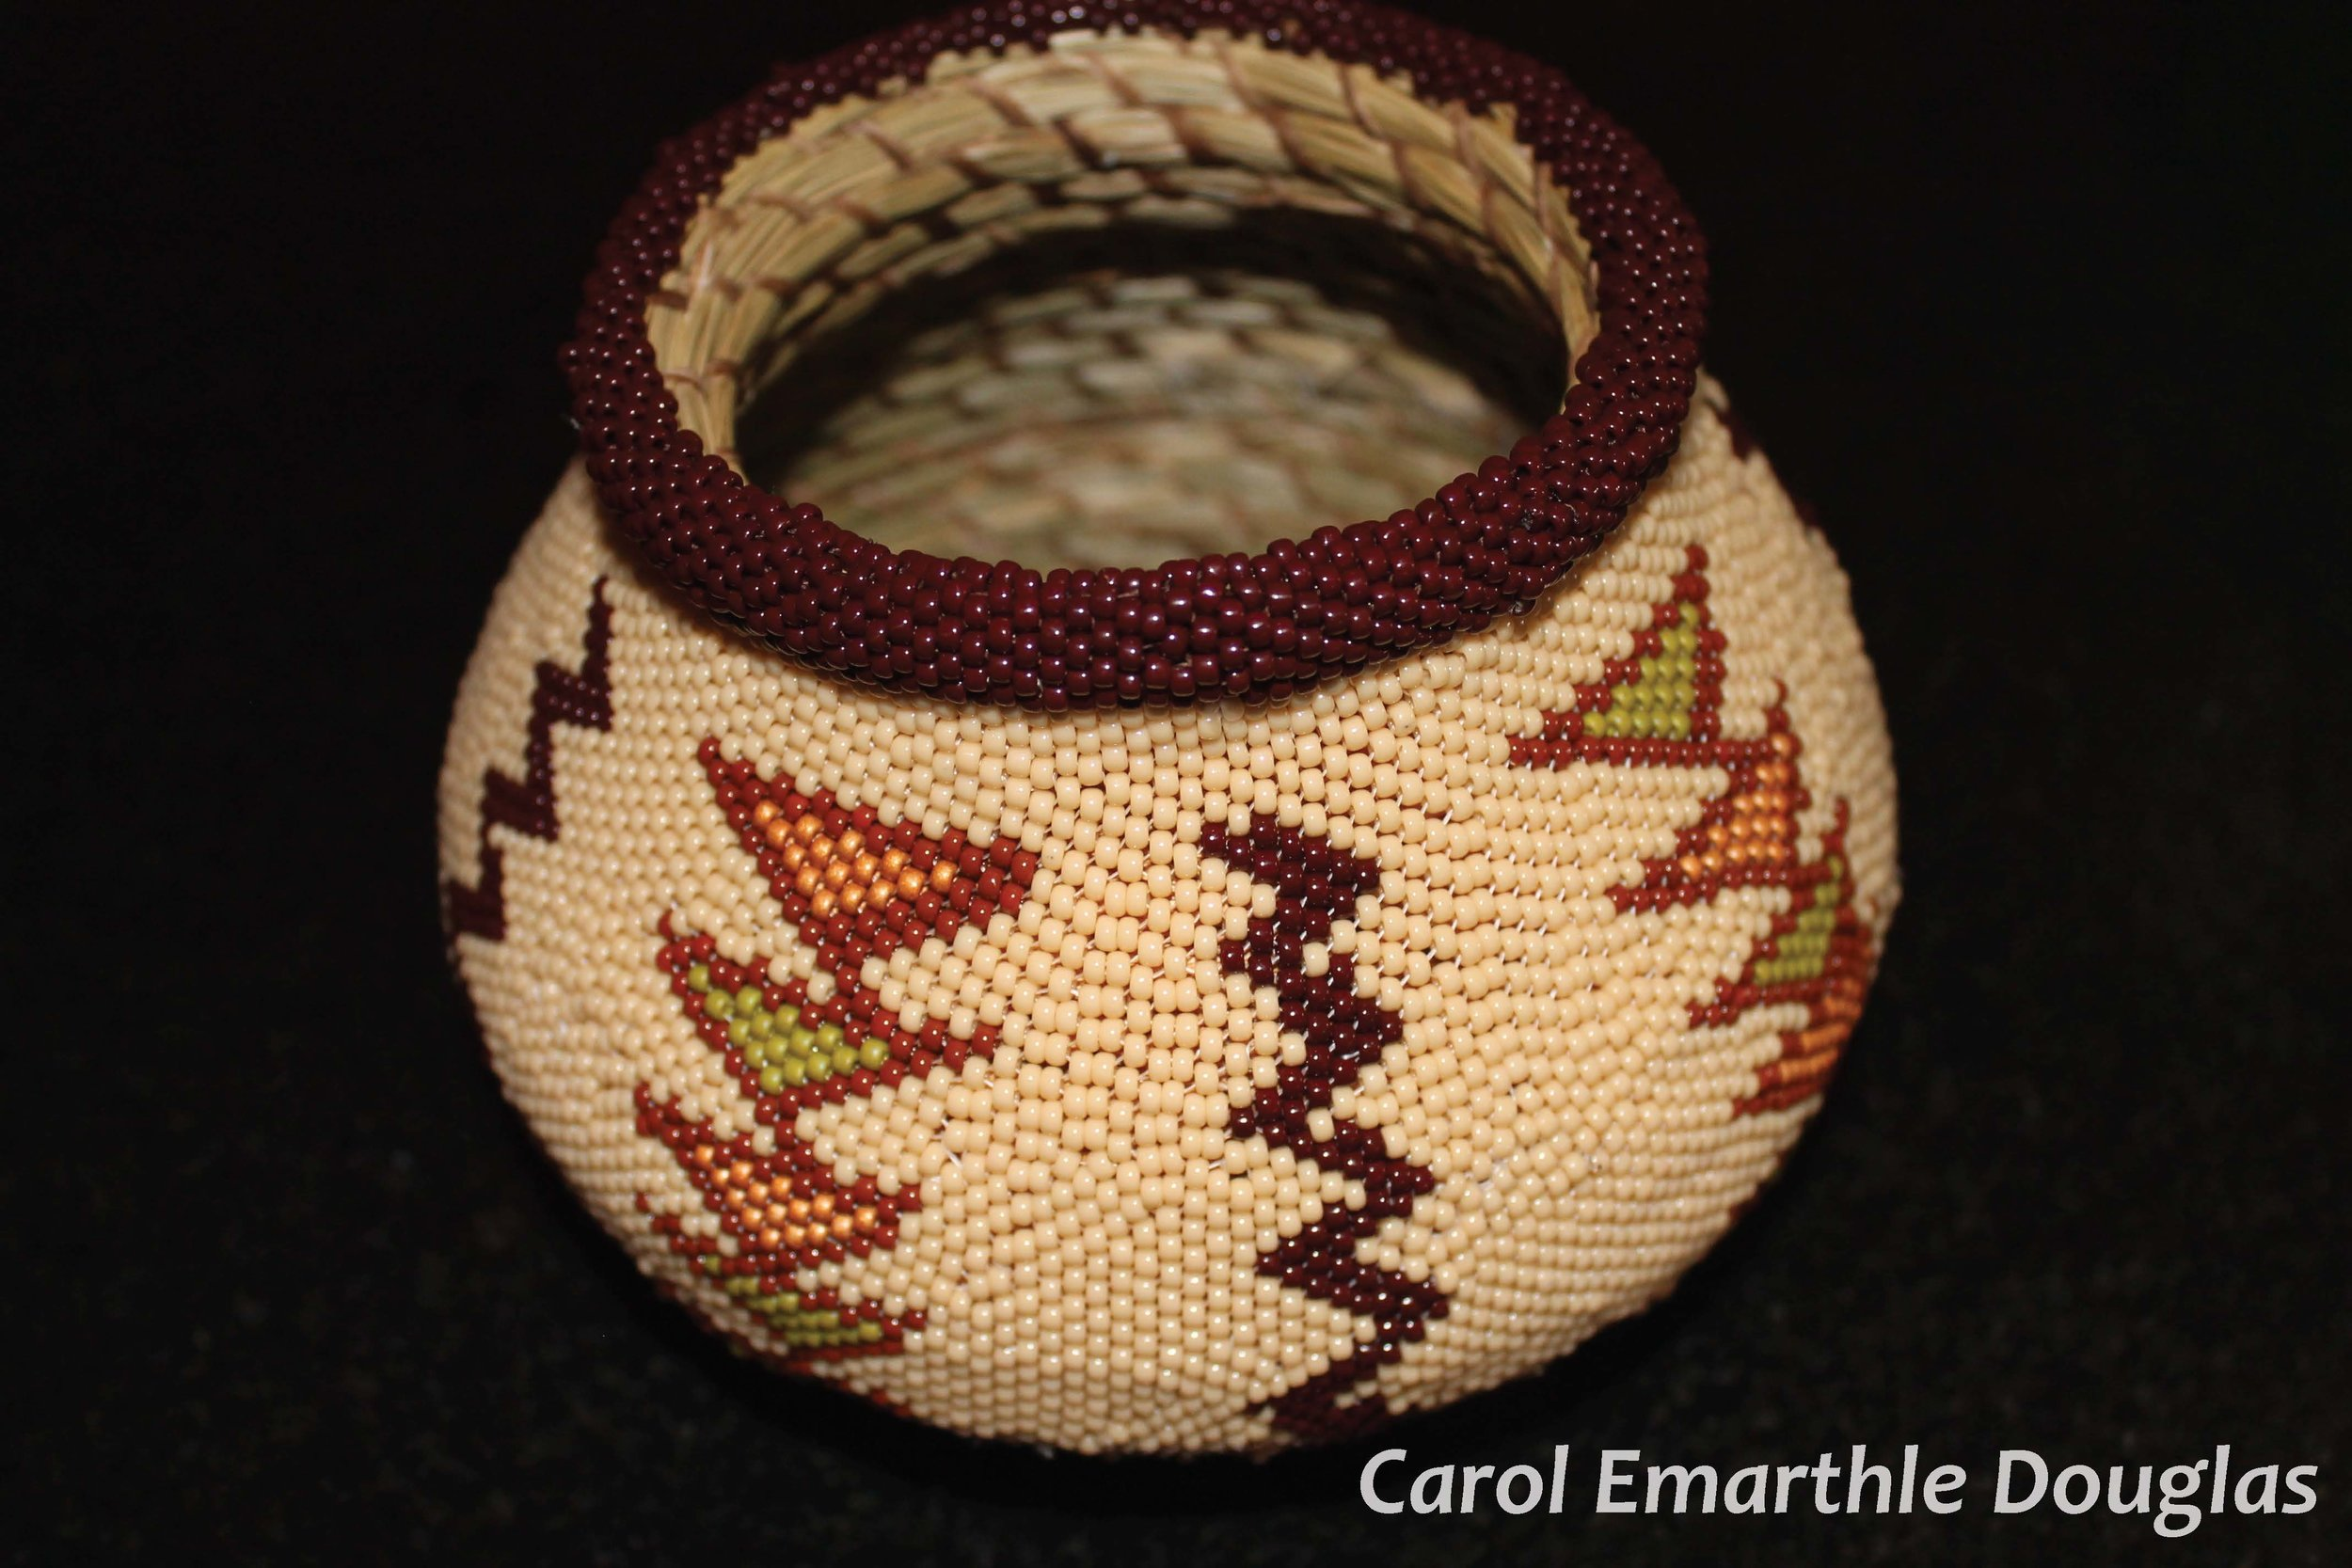 Beyond Coiled Baskets… - Beads may adorn her work as baskets, or her miniatures are made as wearable art.